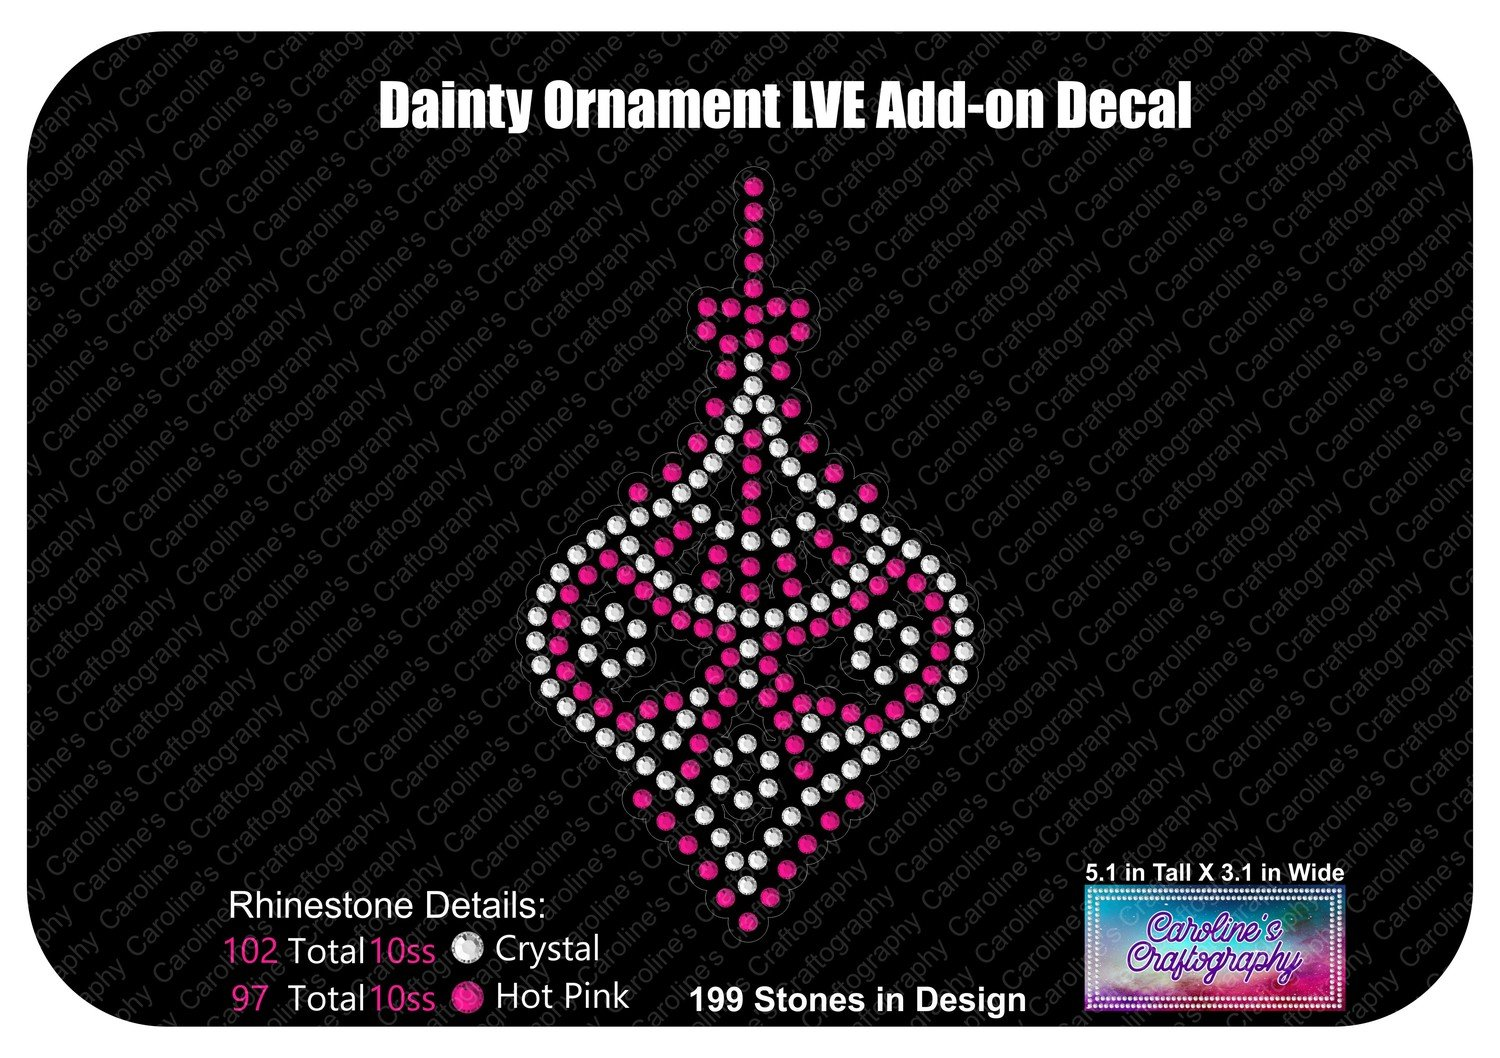 Dainty Ornament LVE Add-on Decal